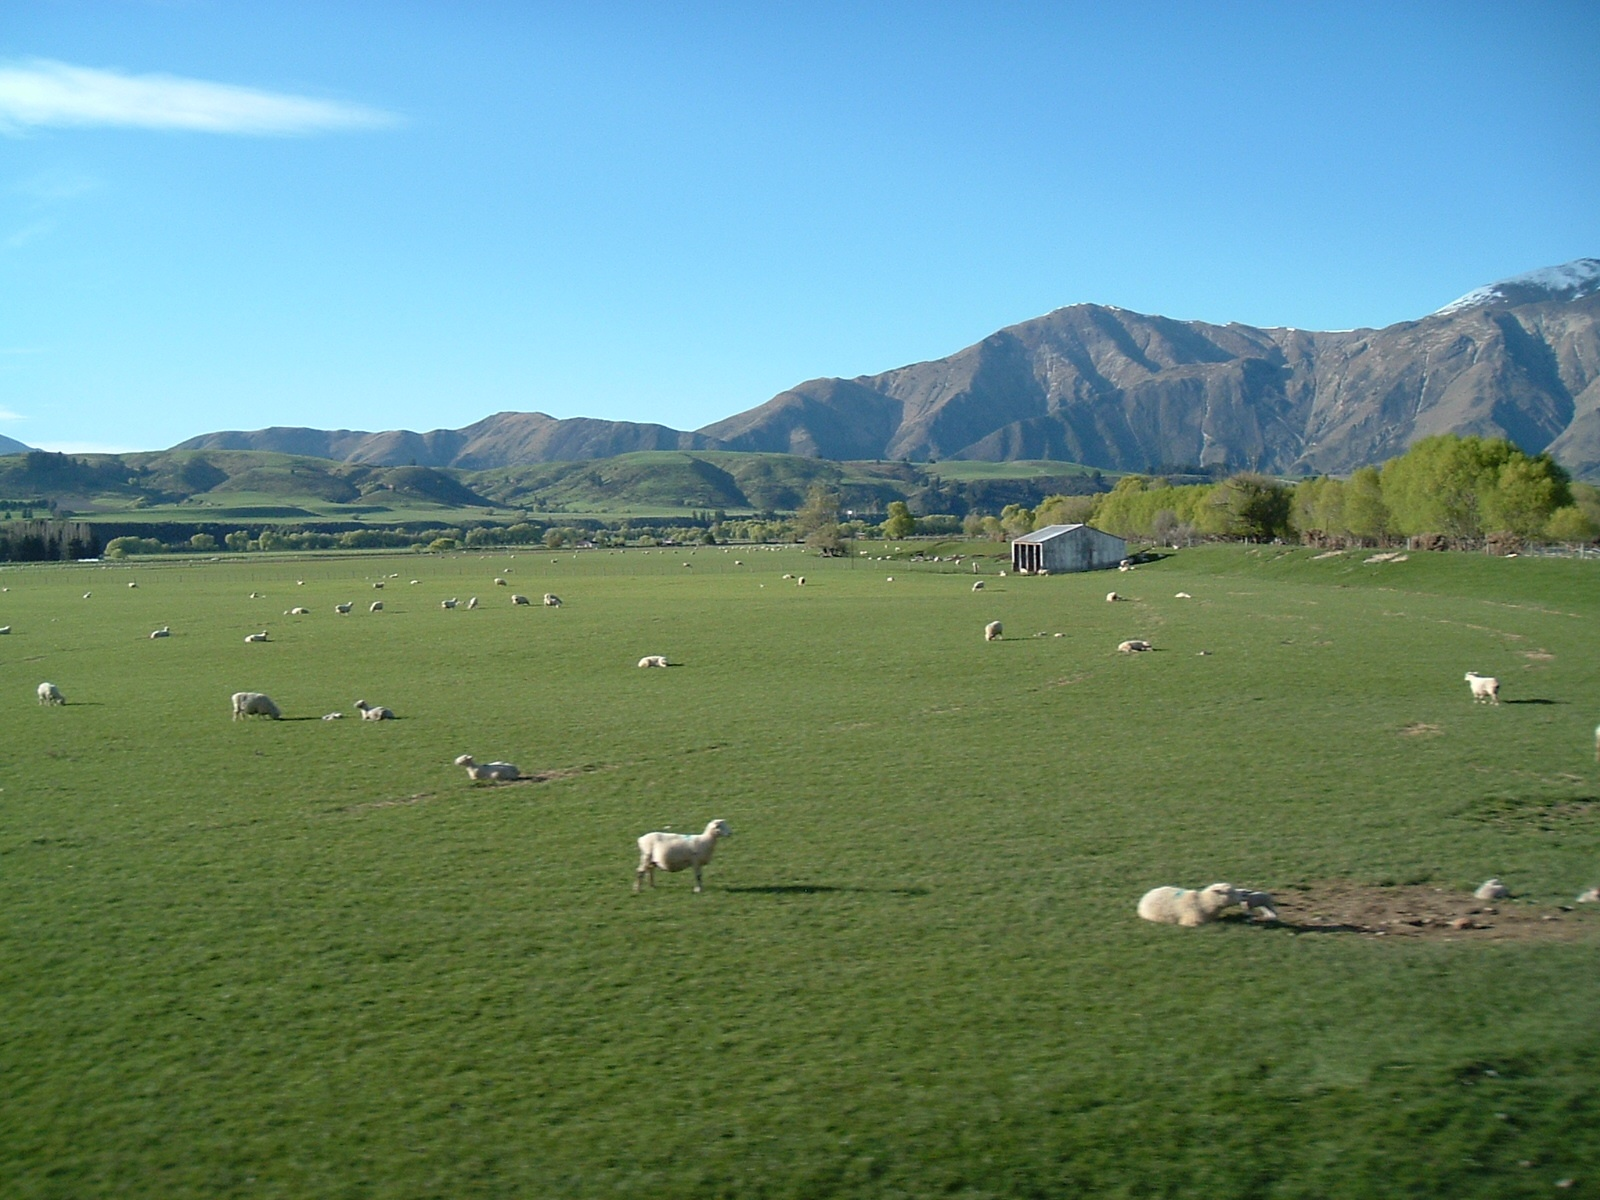 Sheep station outside Queenstown - N.Z. by maria.telegdy